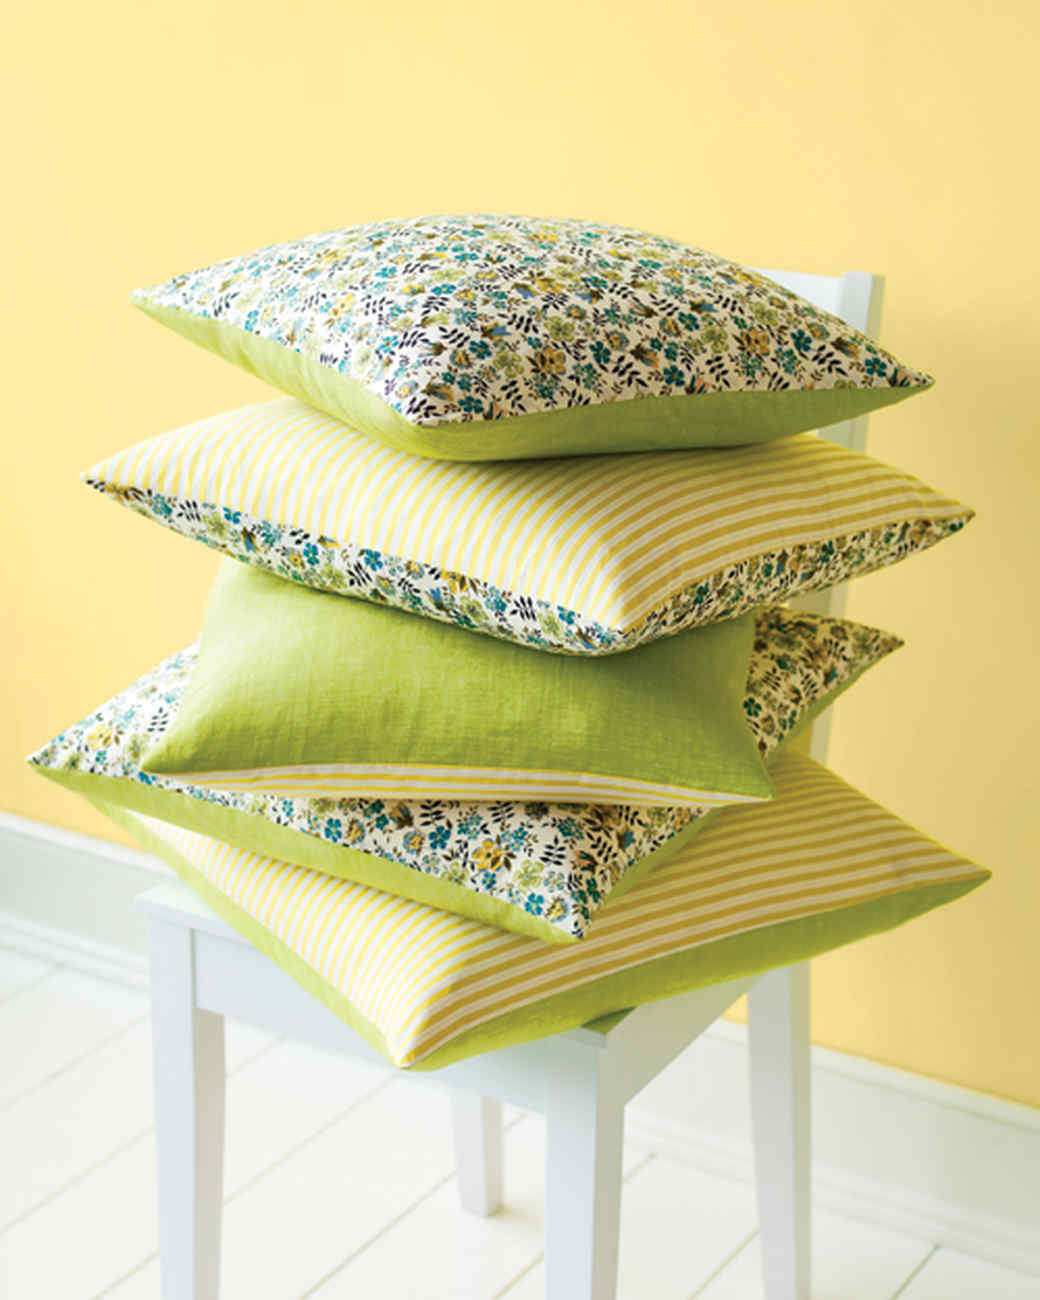 mld105589_0510_pillows1a.jpg